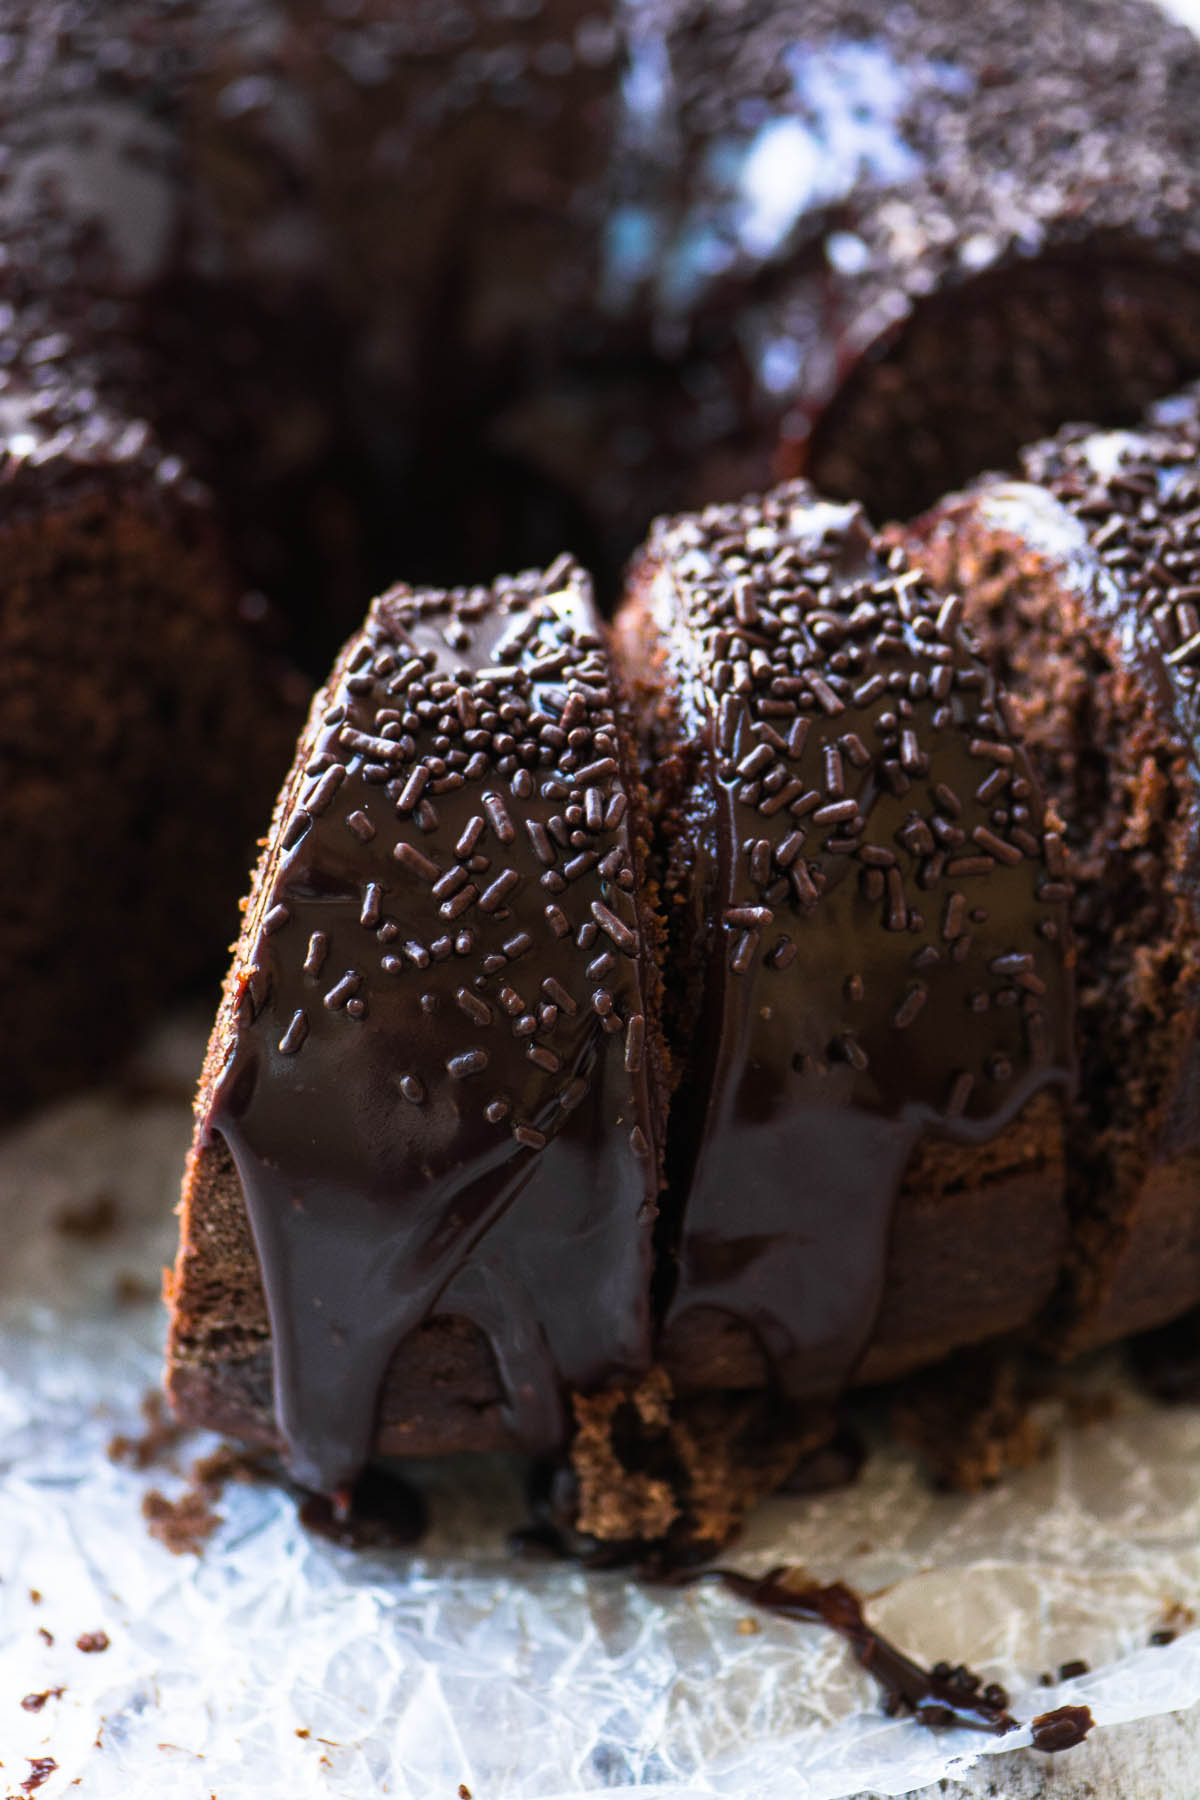 Chocolate Sour Cream Bundt Cake with Chocolate Sprinkles, sliced